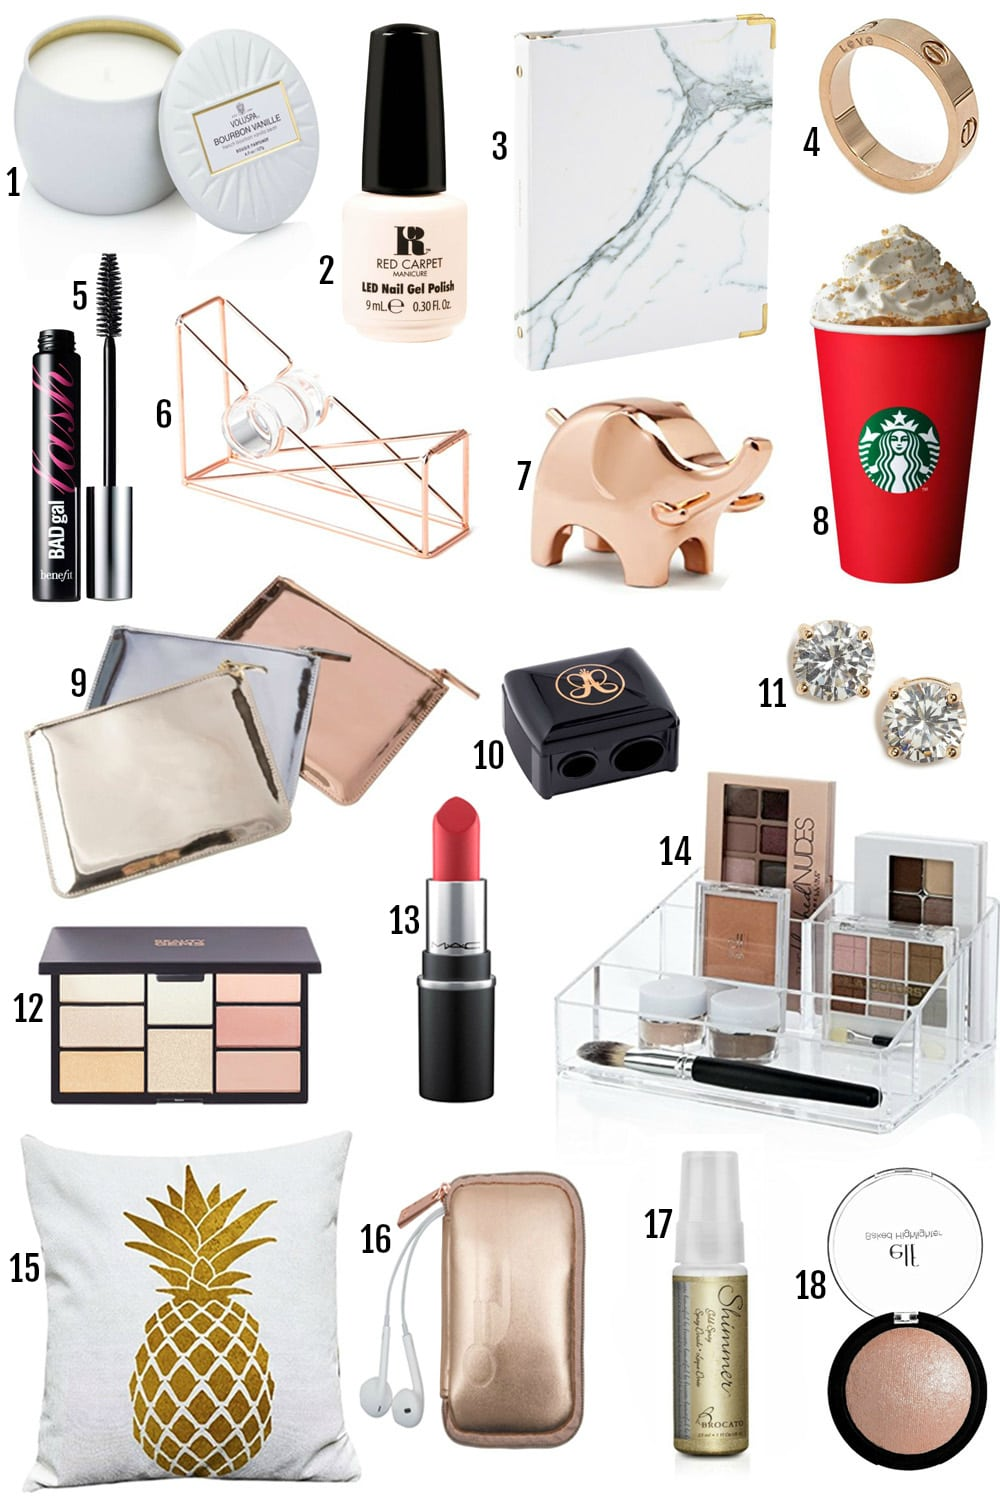 Stocking Stuffer Ideas Under $10 by popular Orlando blogger Mash Elle